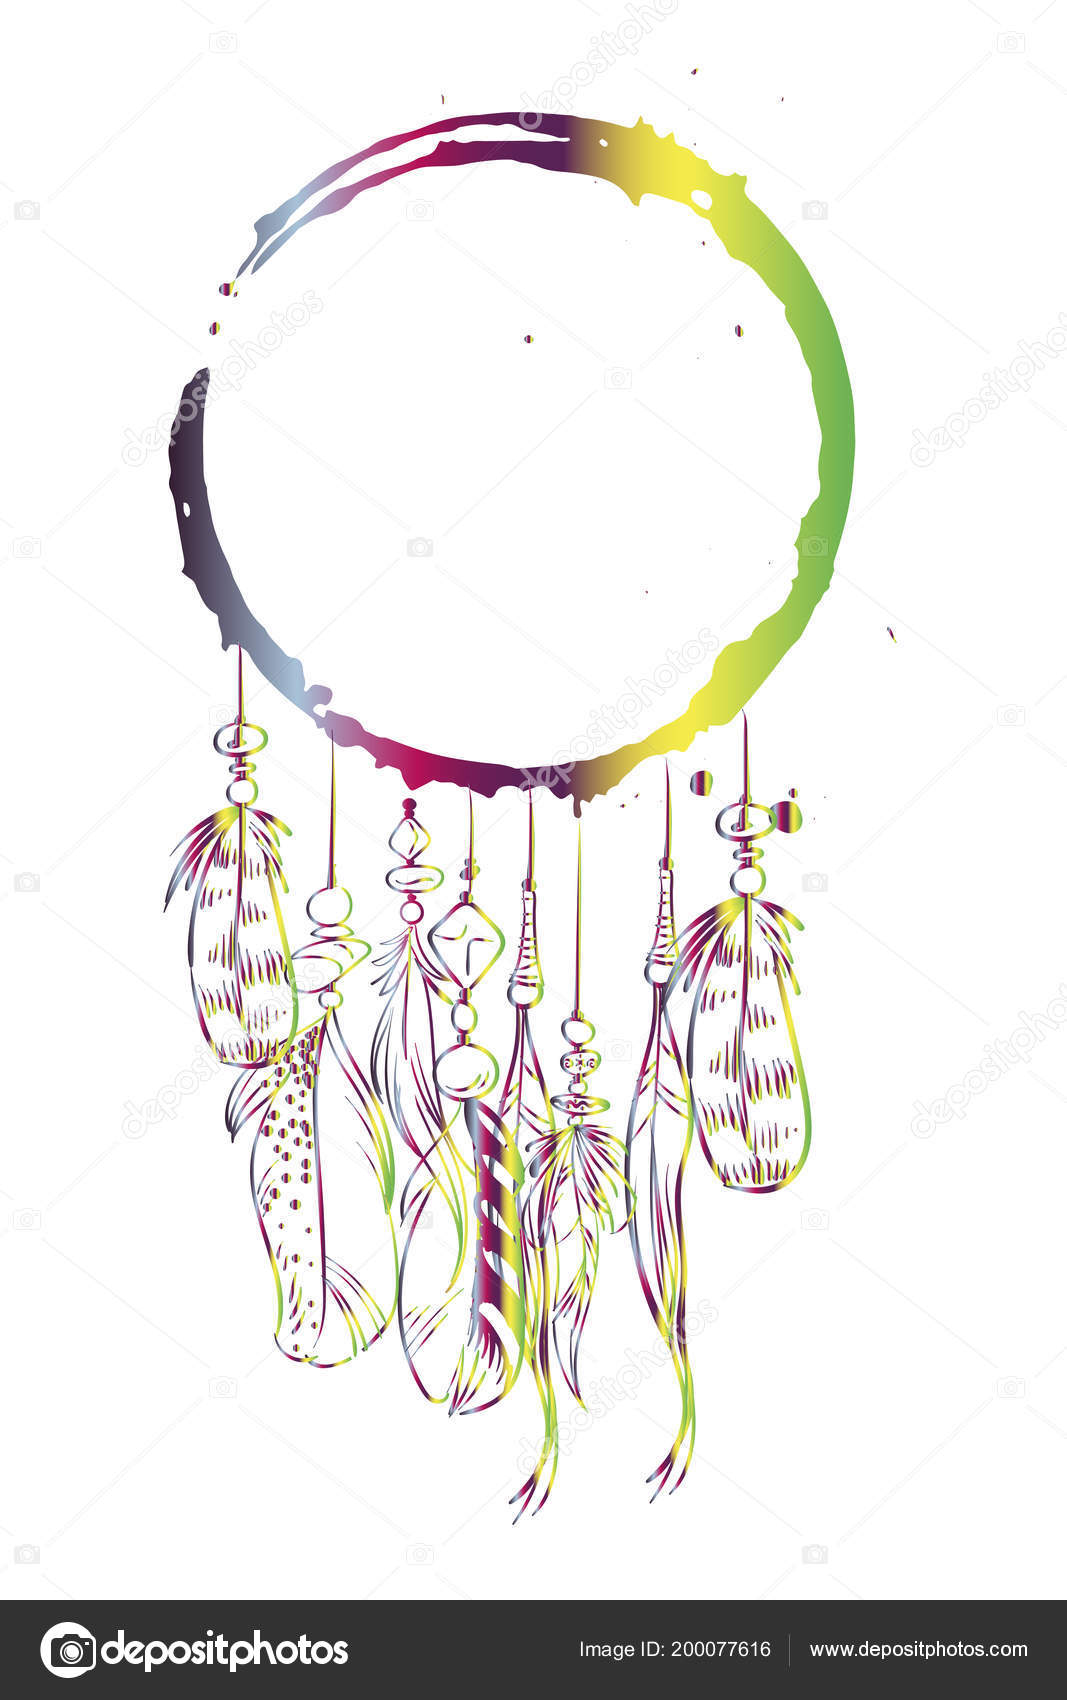 vector template greeting card gradient dream catcher feathers beads